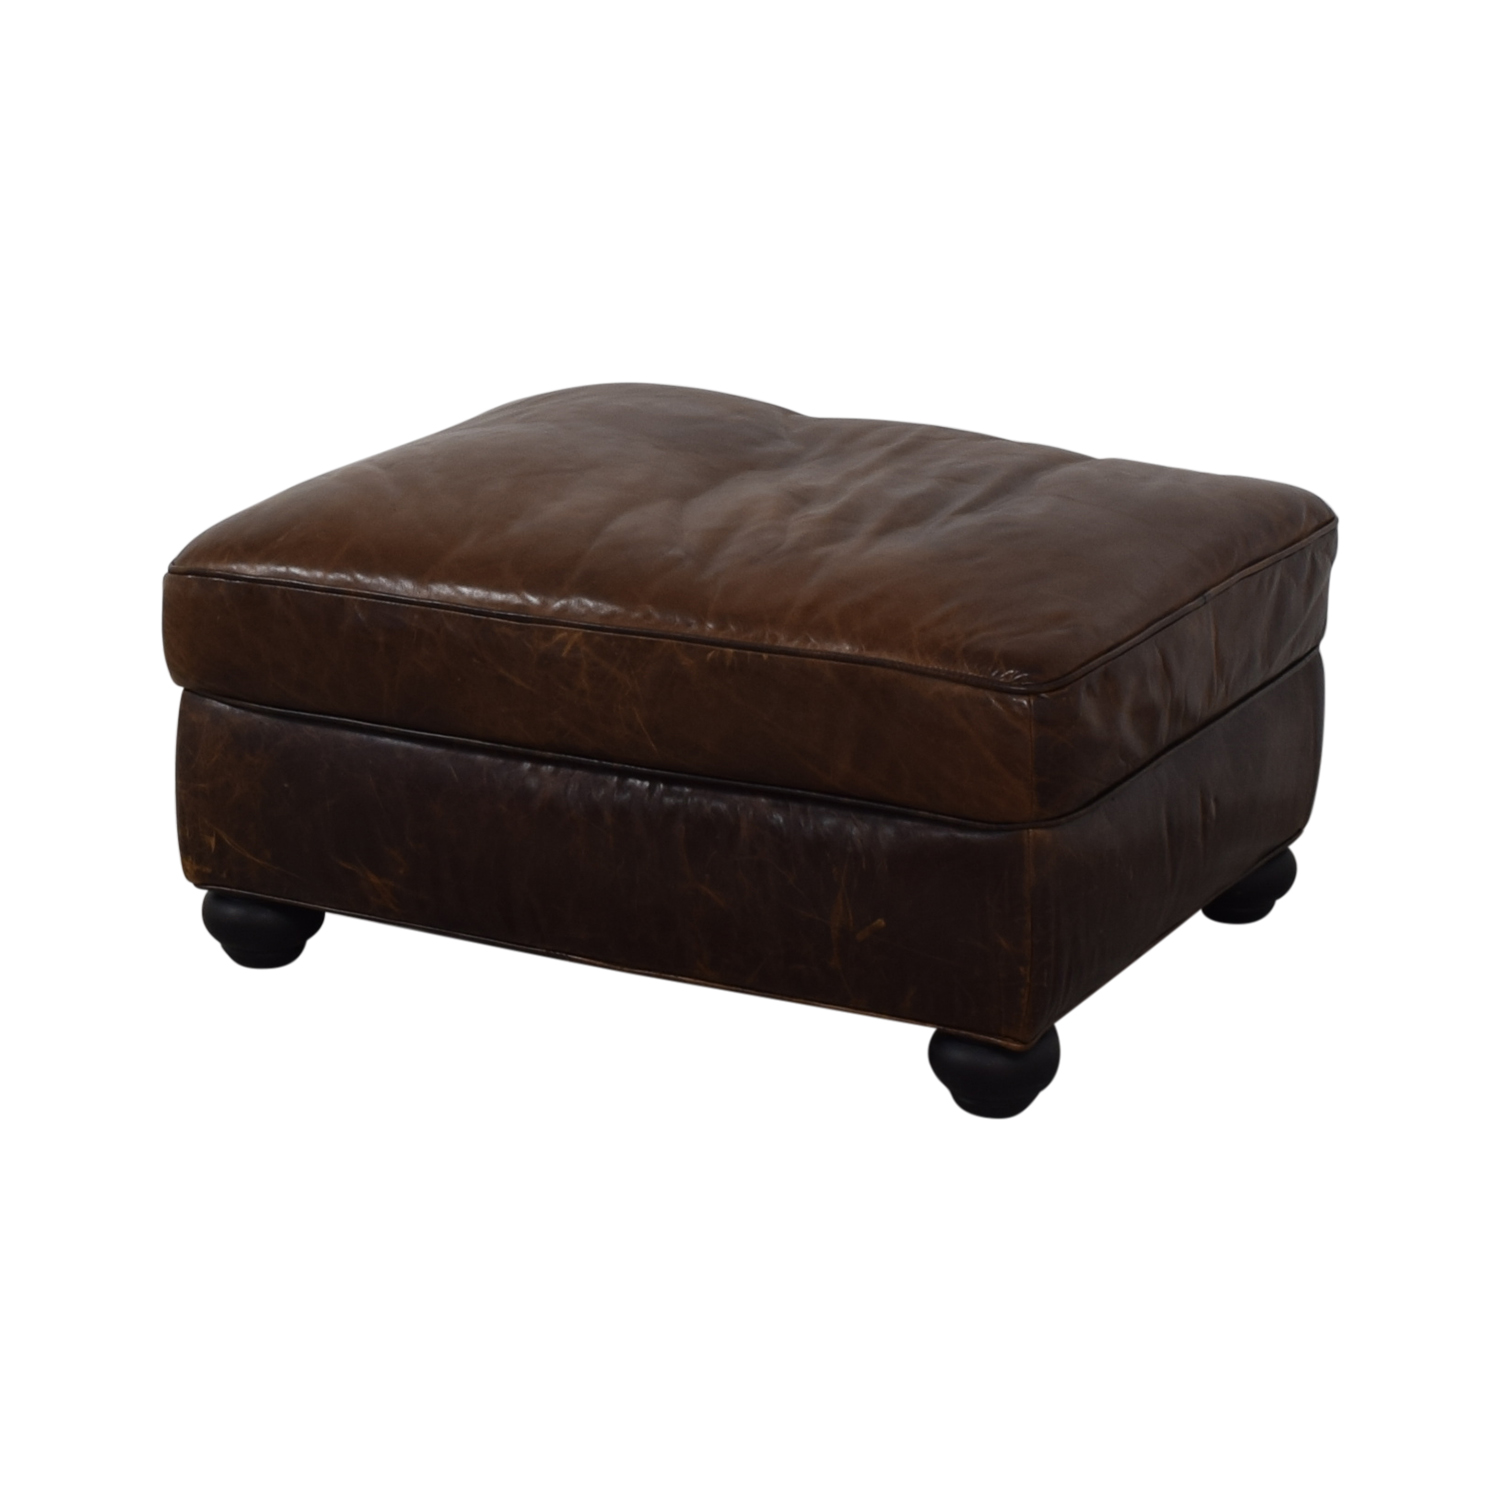 Restoration Hardware Restoration Hardware Lancaster Leather Ottoman for sale